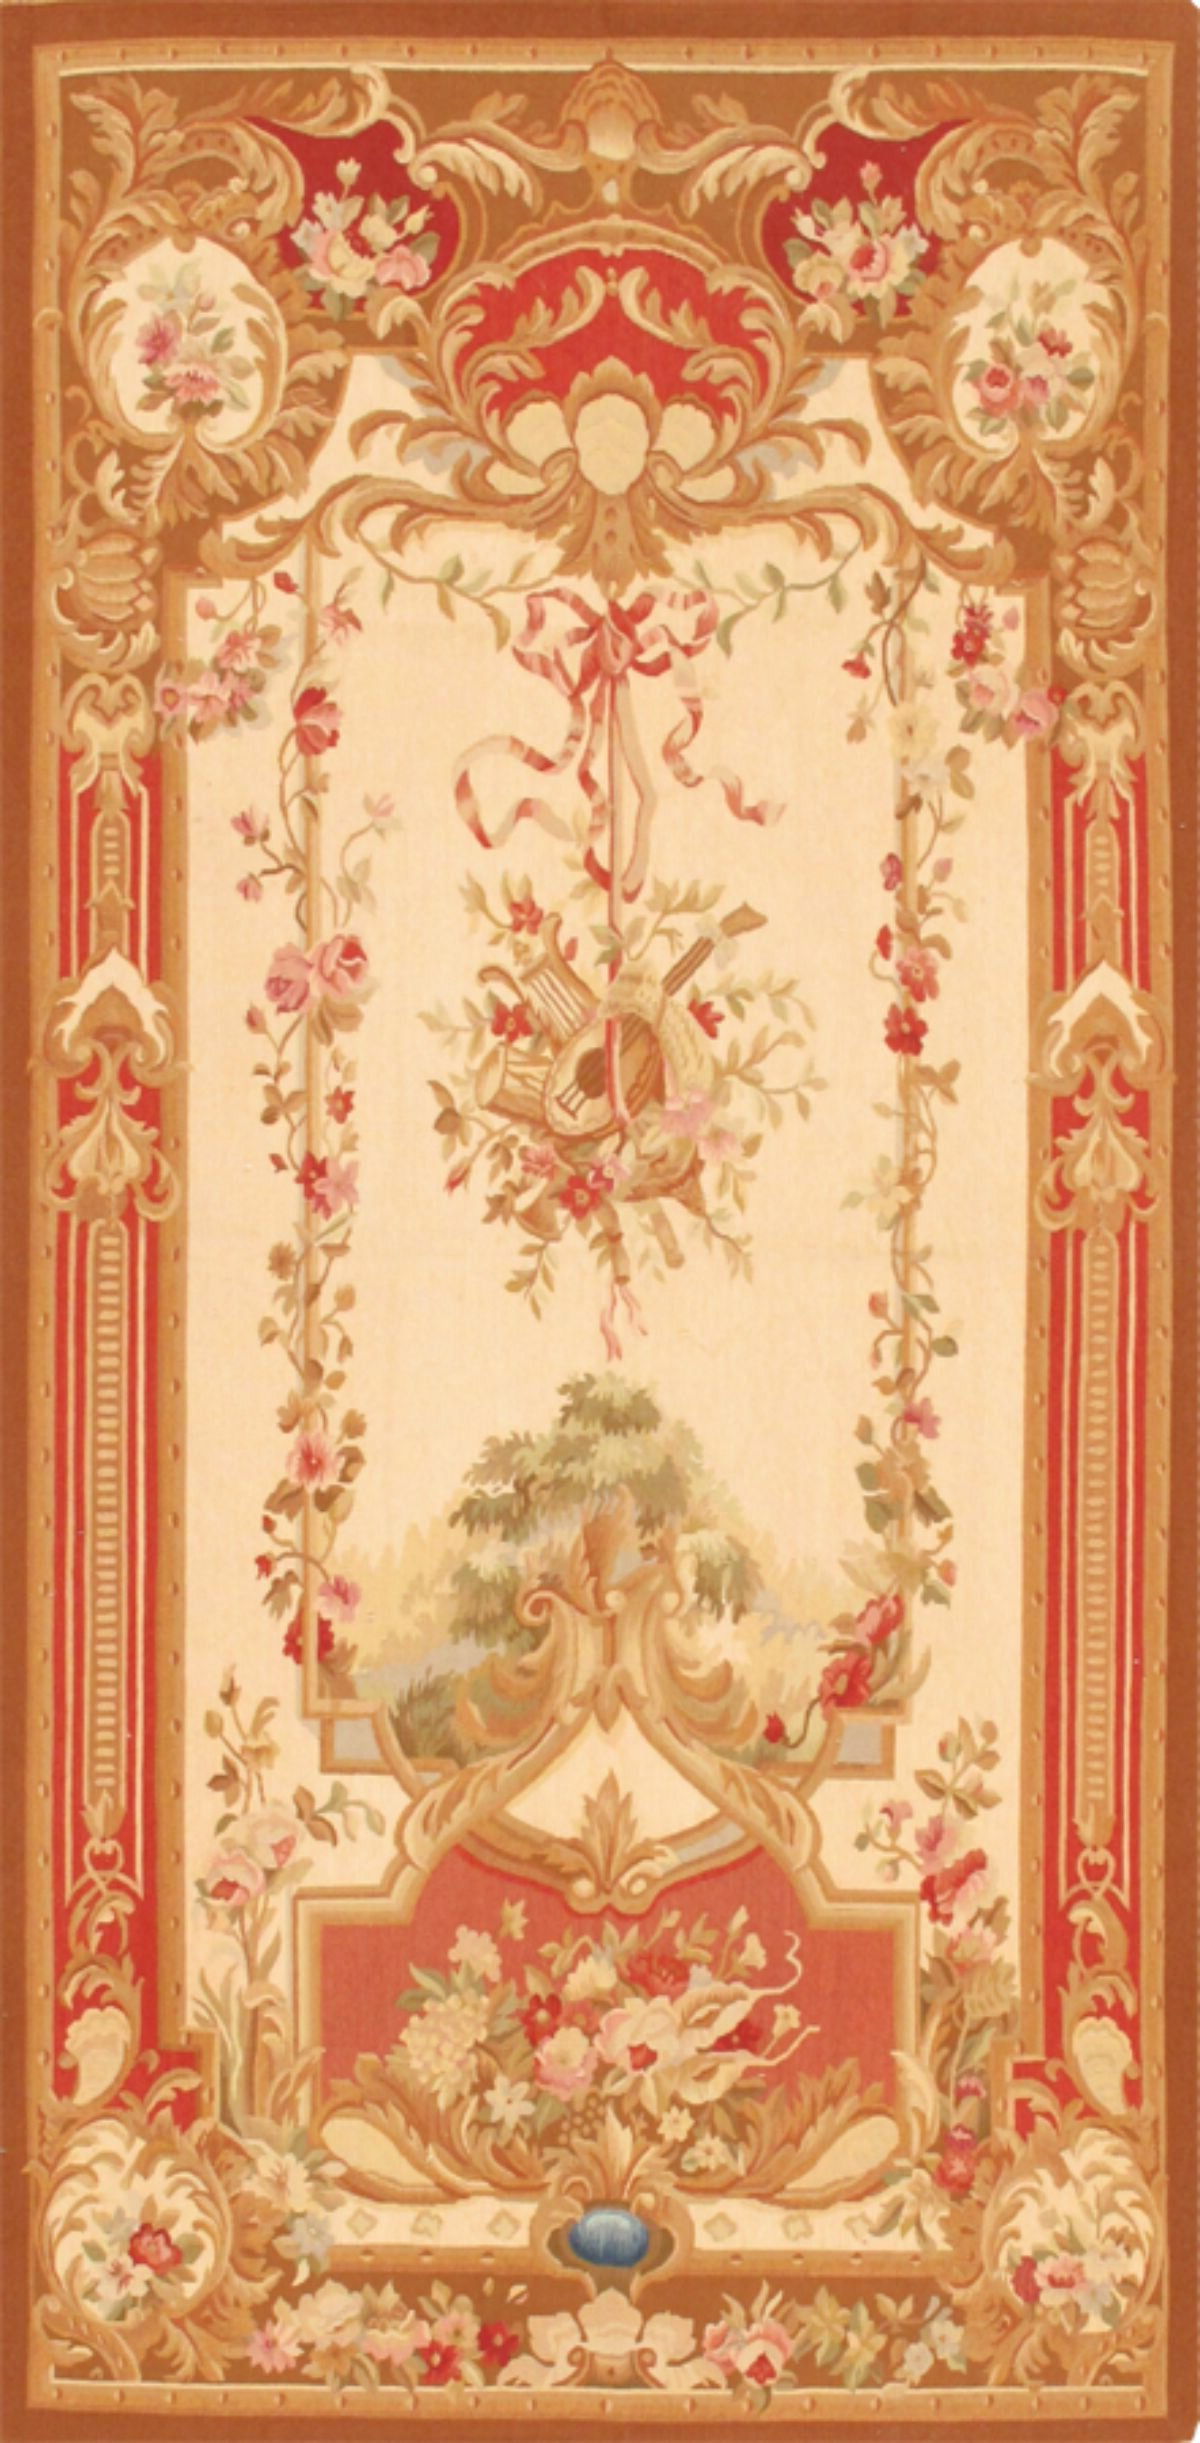 Blended Fabric Ethereal Days Chinoiserie Wall Hangings With Rod Regarding Most Recently Released Tapestry (View 13 of 20)